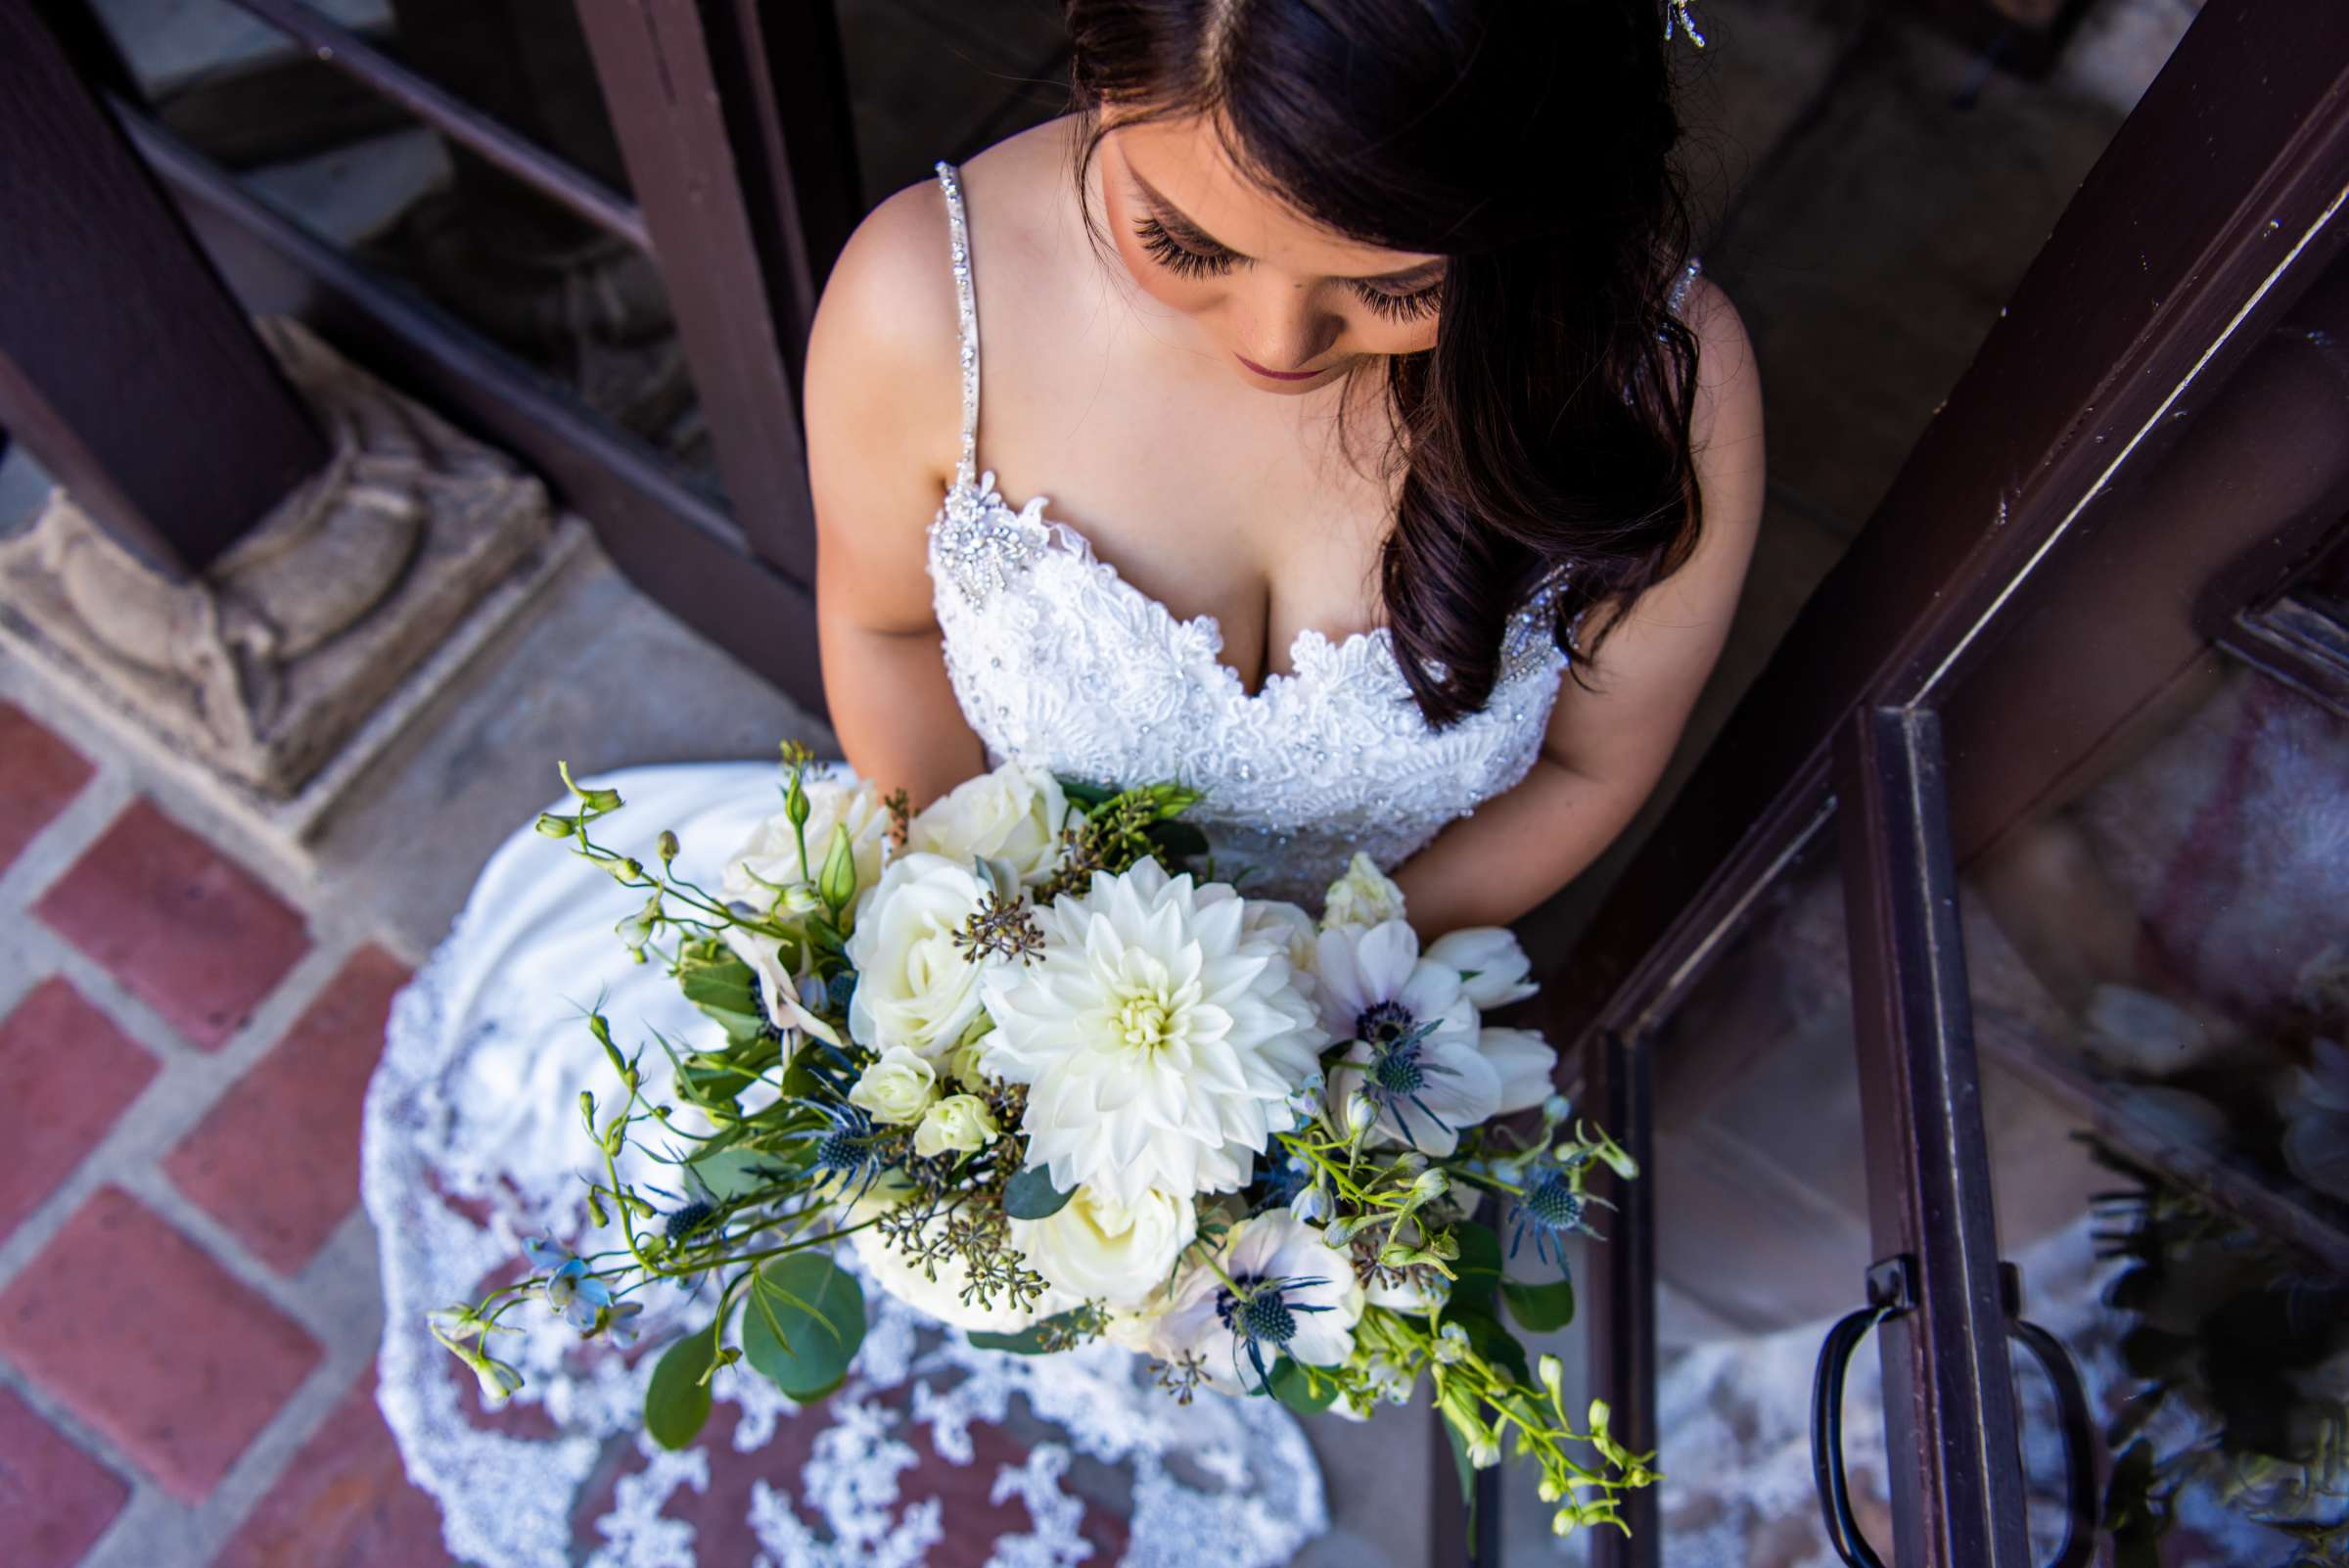 Mt Woodson Castle Wedding coordinated by I Do Weddings, Aya and Jared Wedding Photo #486922 by True Photography